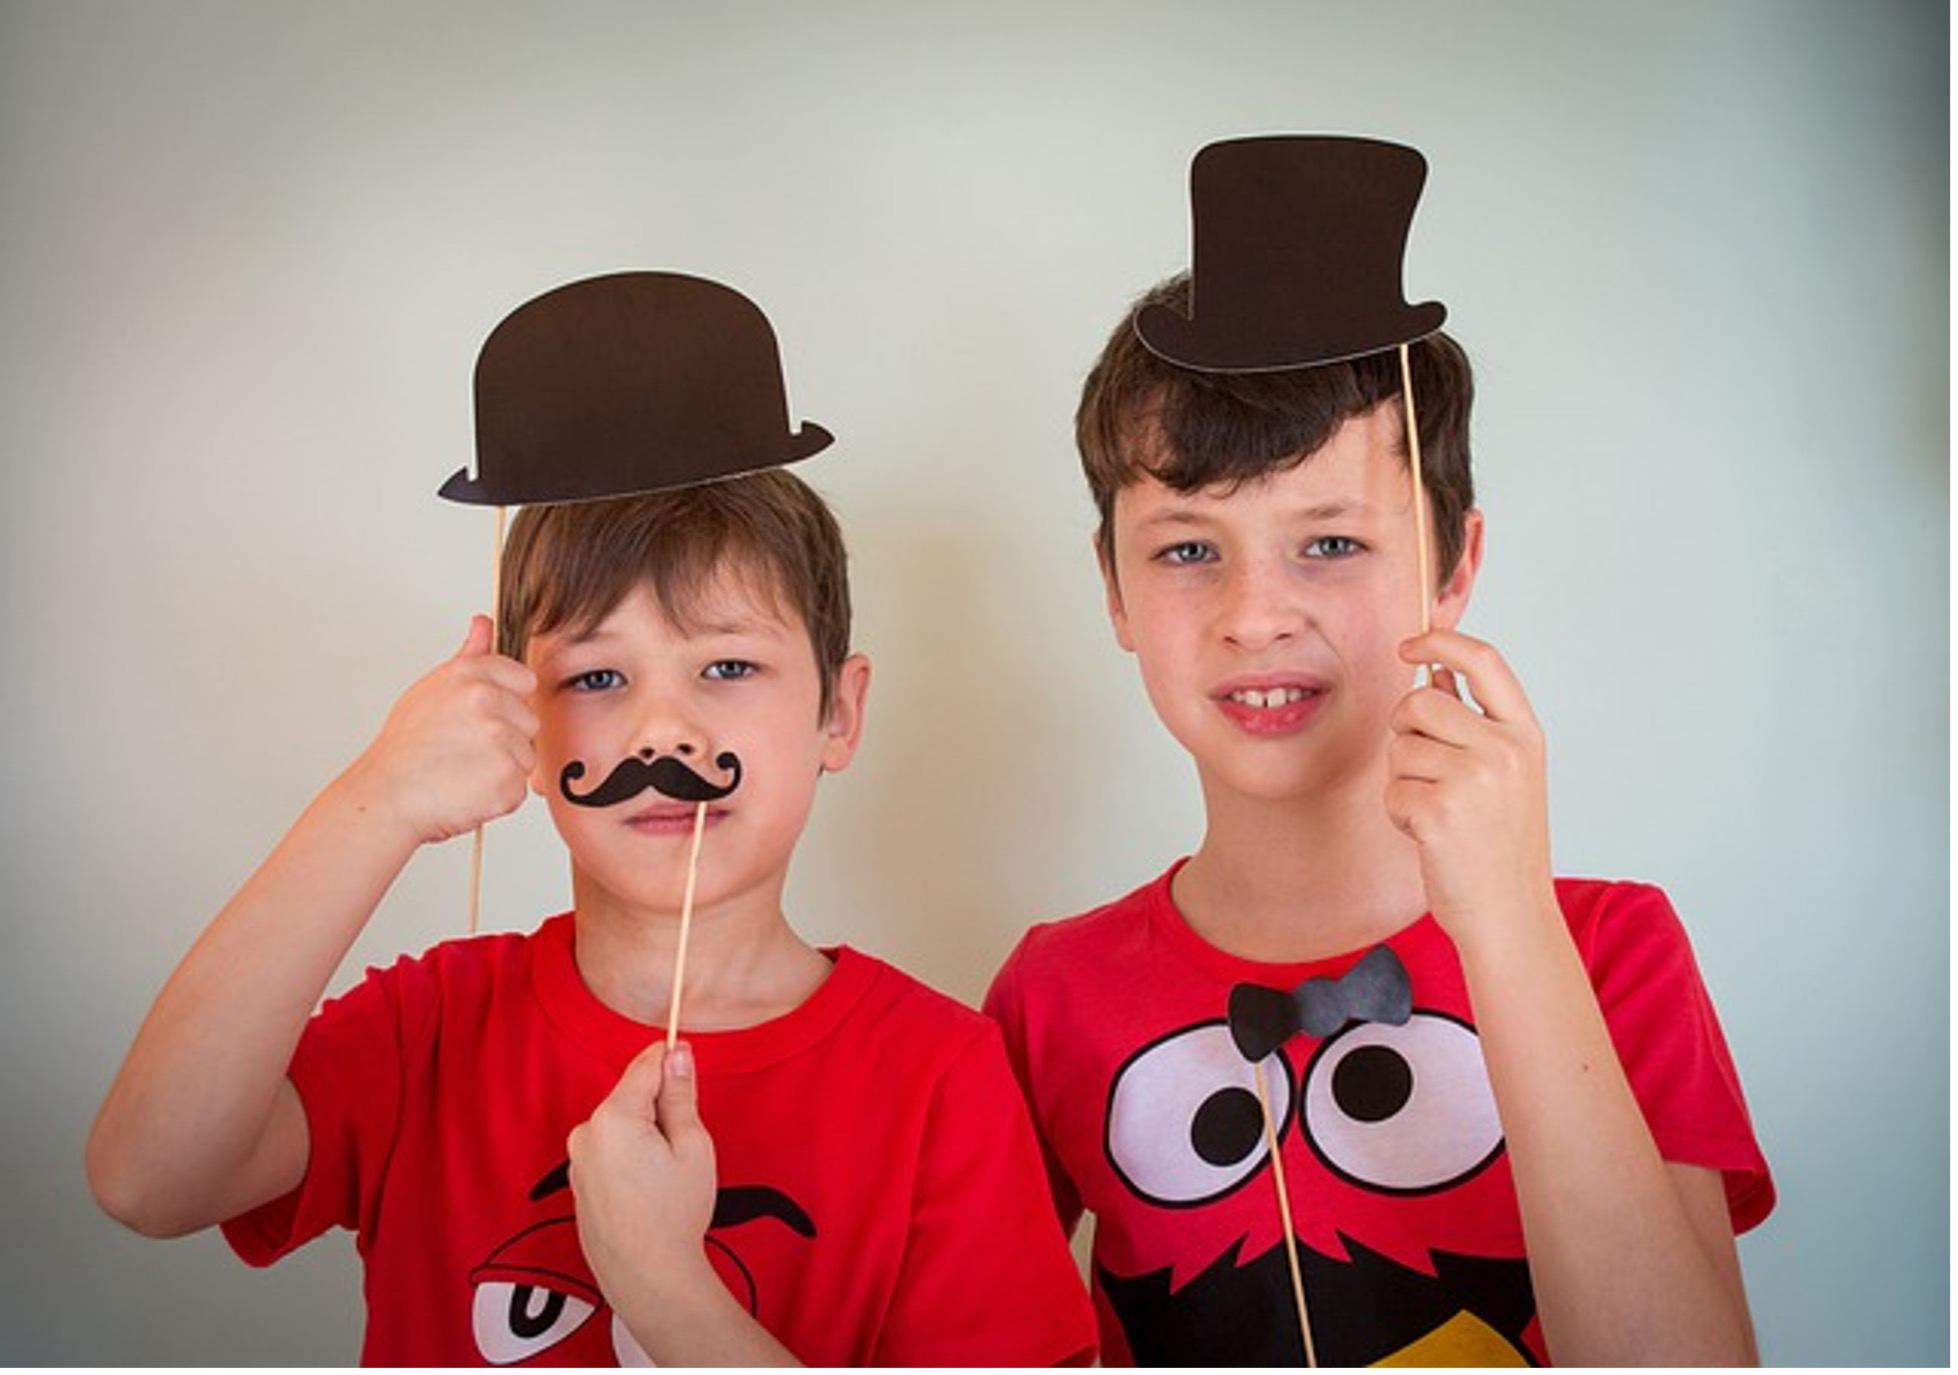 Kids using props while posing in front of the photo booth's camera